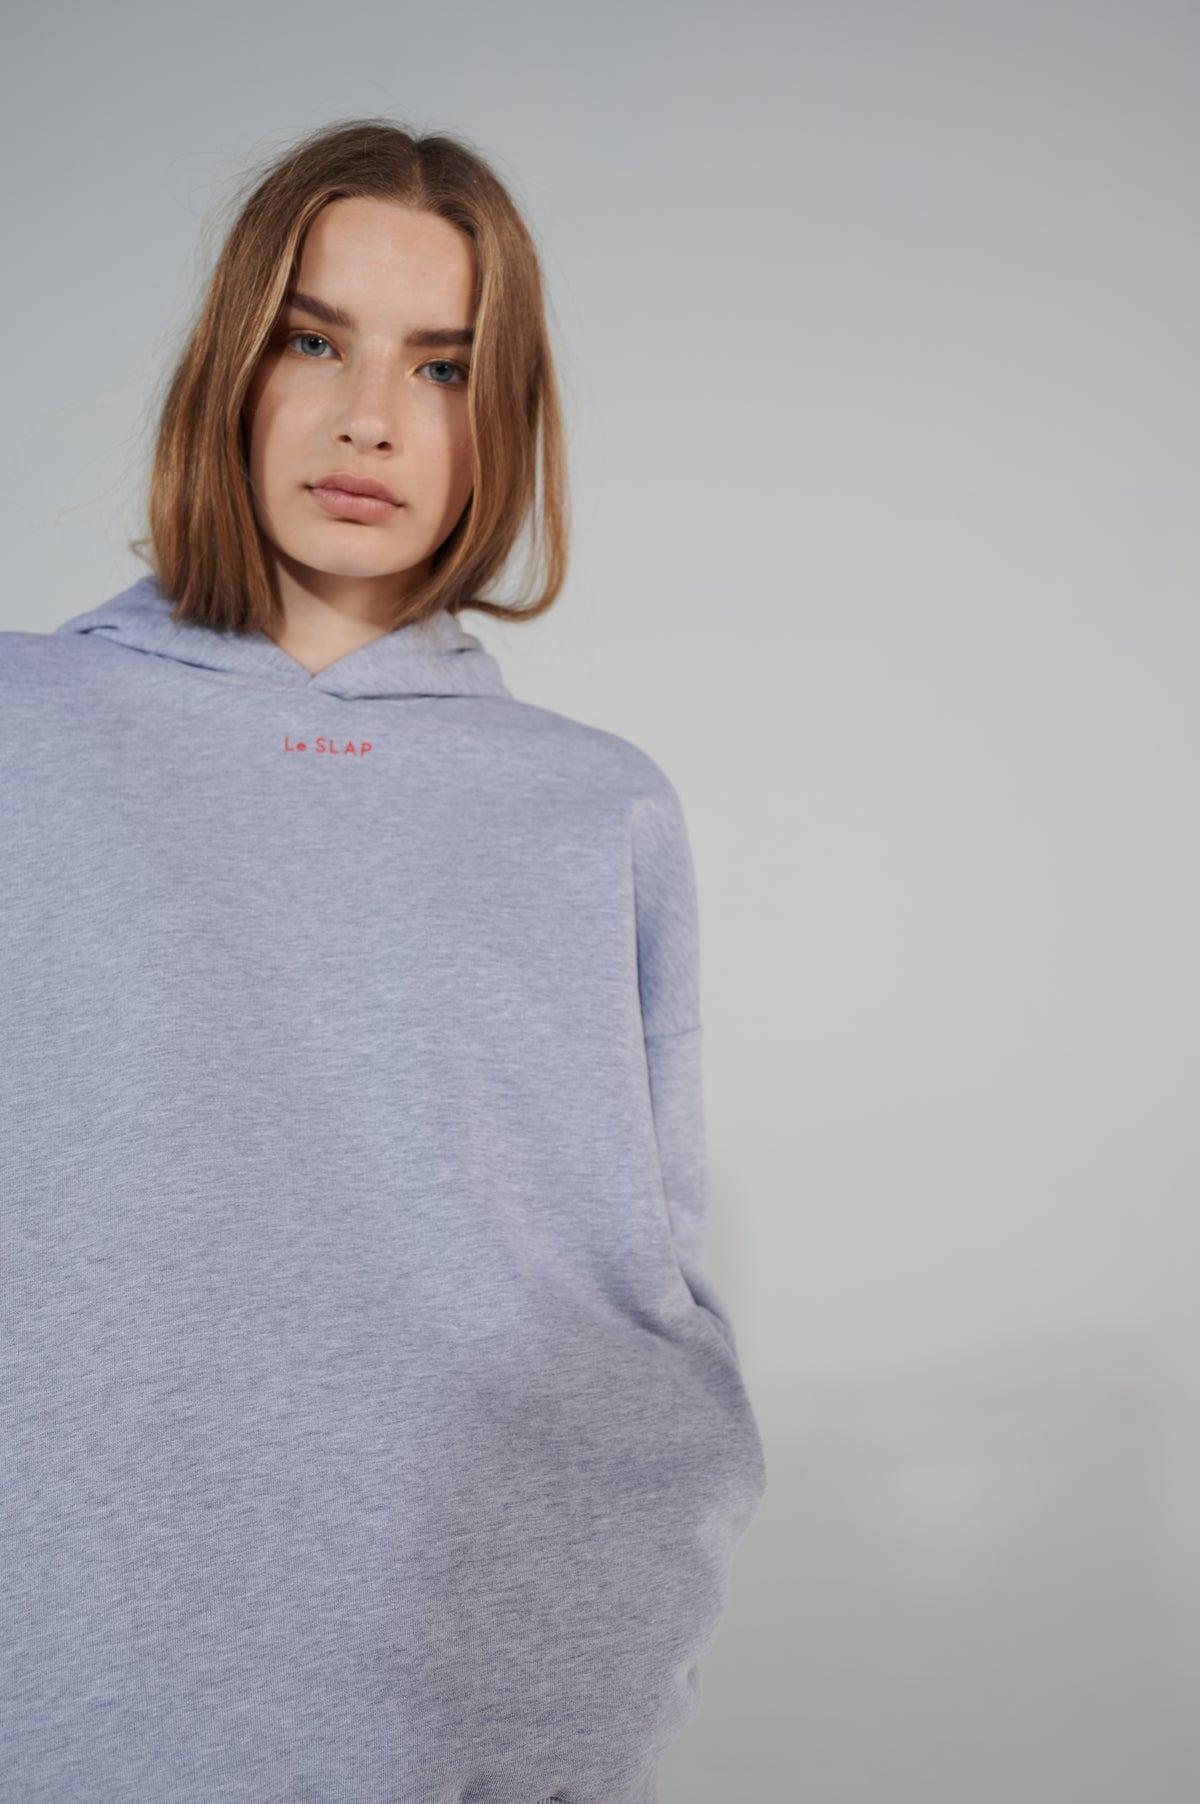 grey-unisex-hoodie-lifetime-le-slap-lookbook.jpg